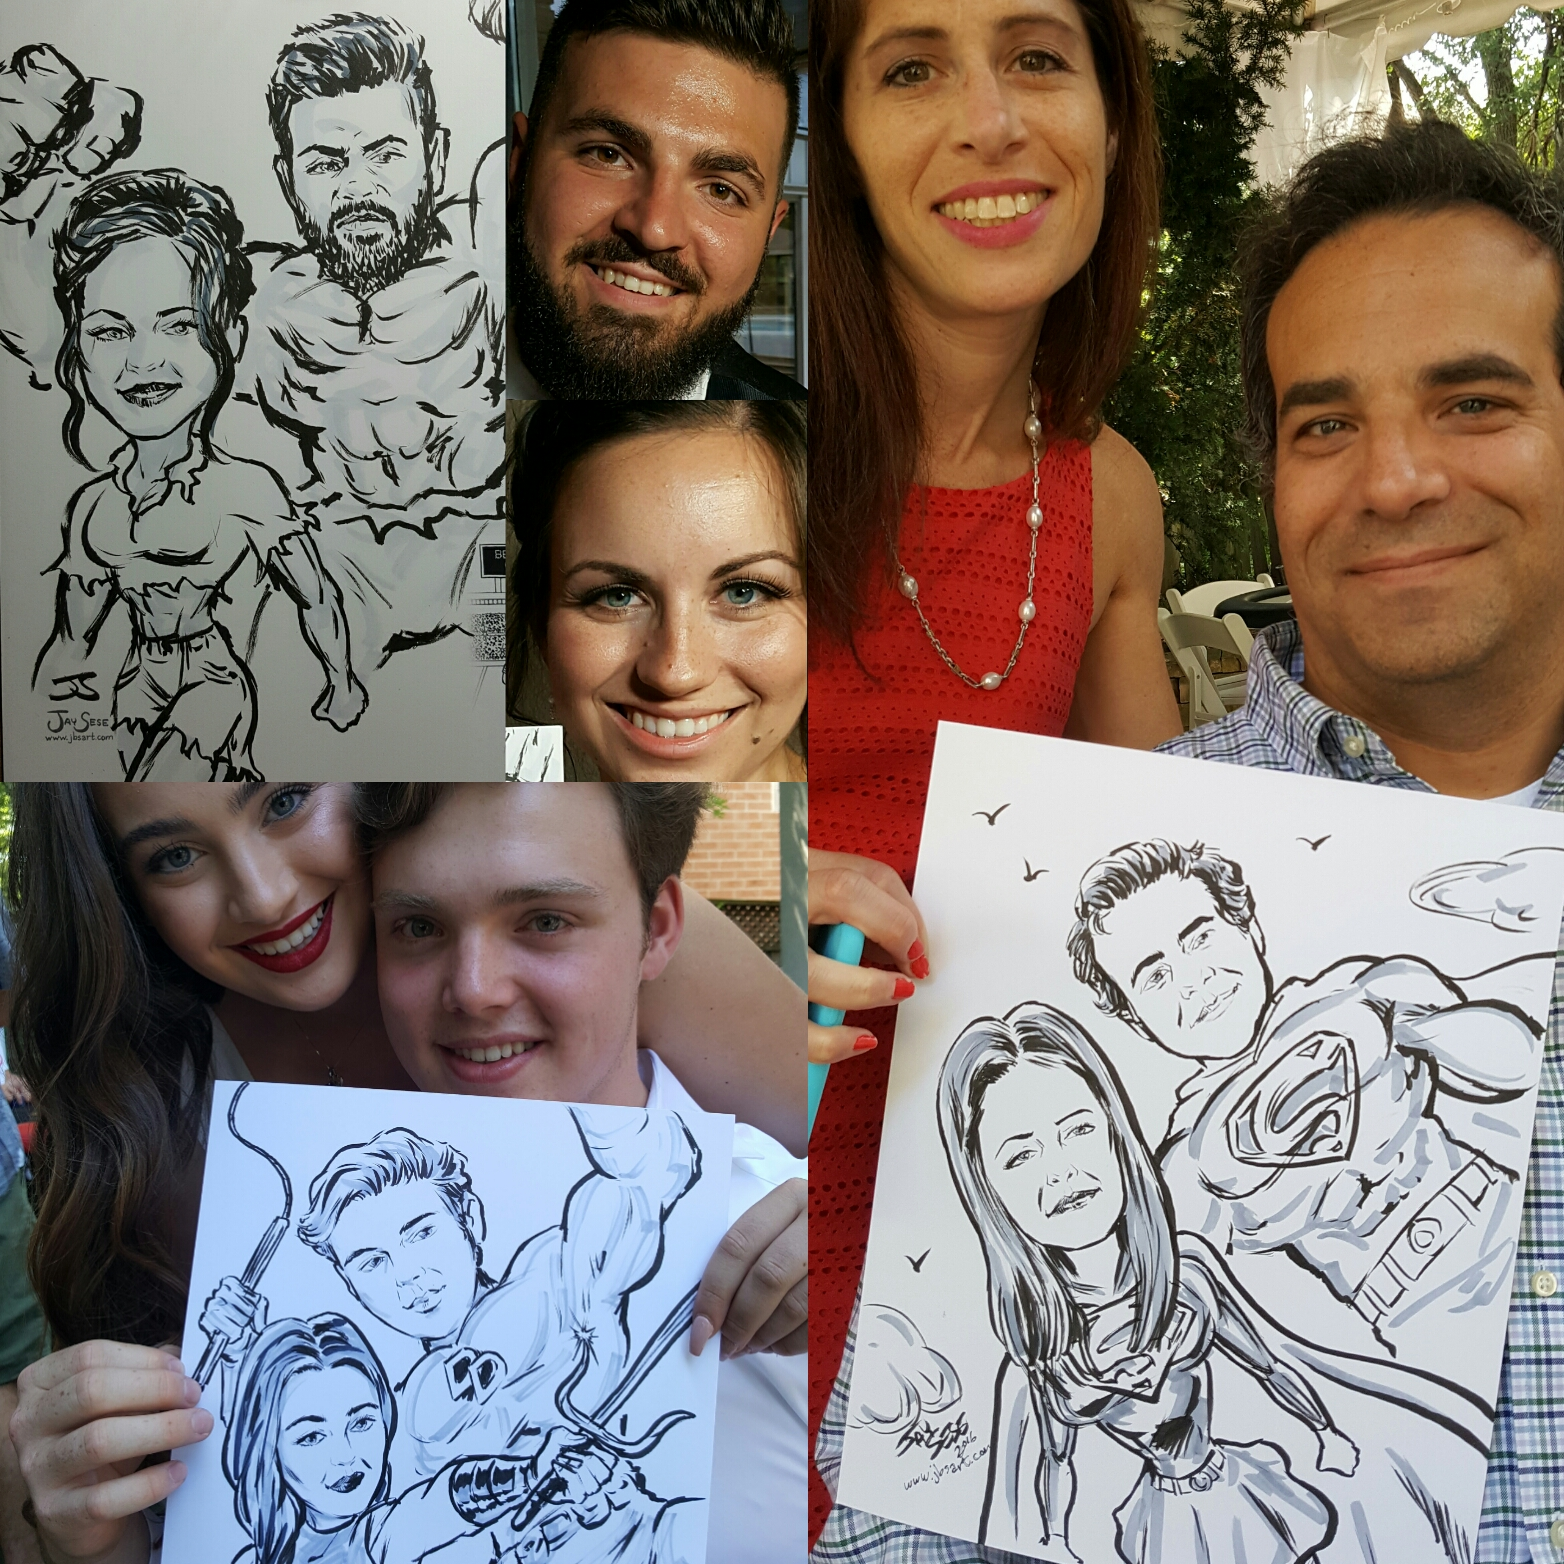 Sample superhero caricatures, 2016